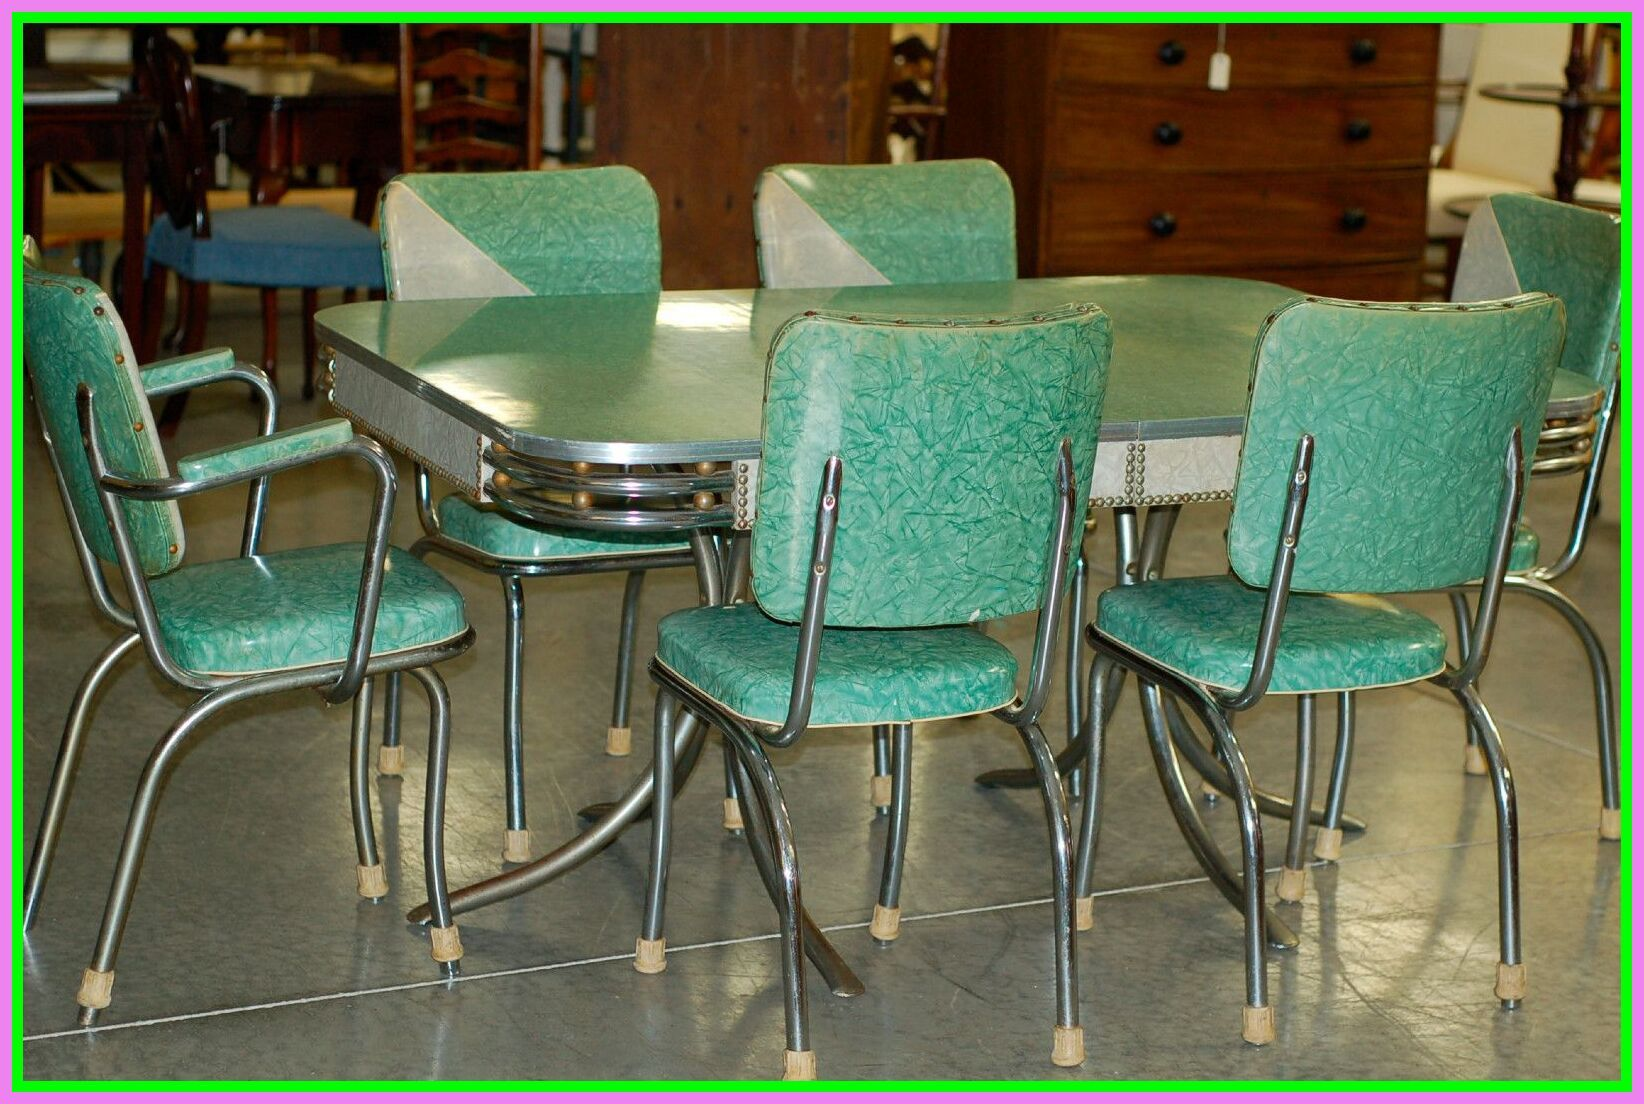 64 Reference Of Vintage Formica Table And Chairs In 2020 Retro